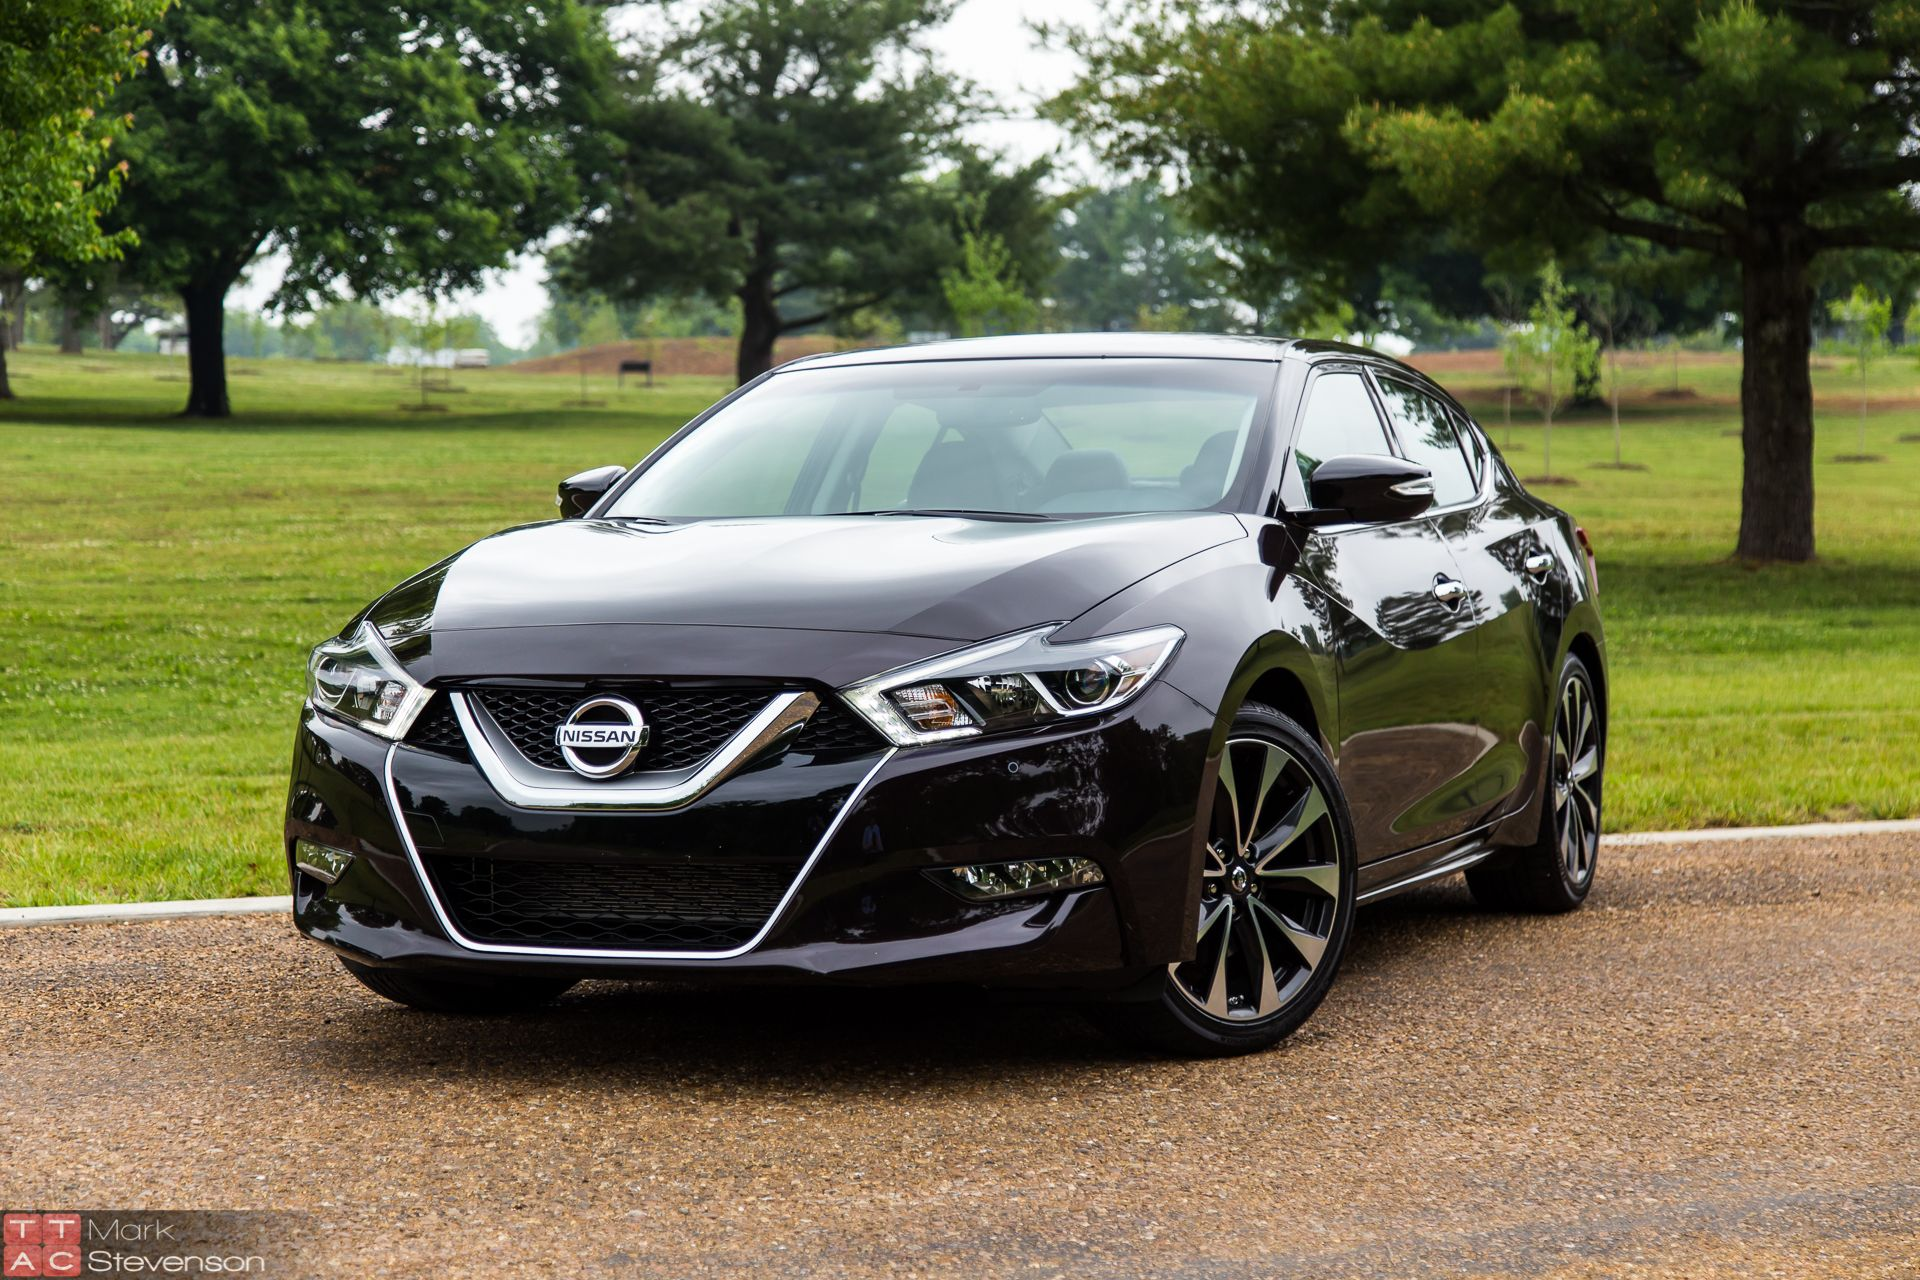 Nissan maxima maxima pinterest nissan maxima nissan and cars vanachro Image collections